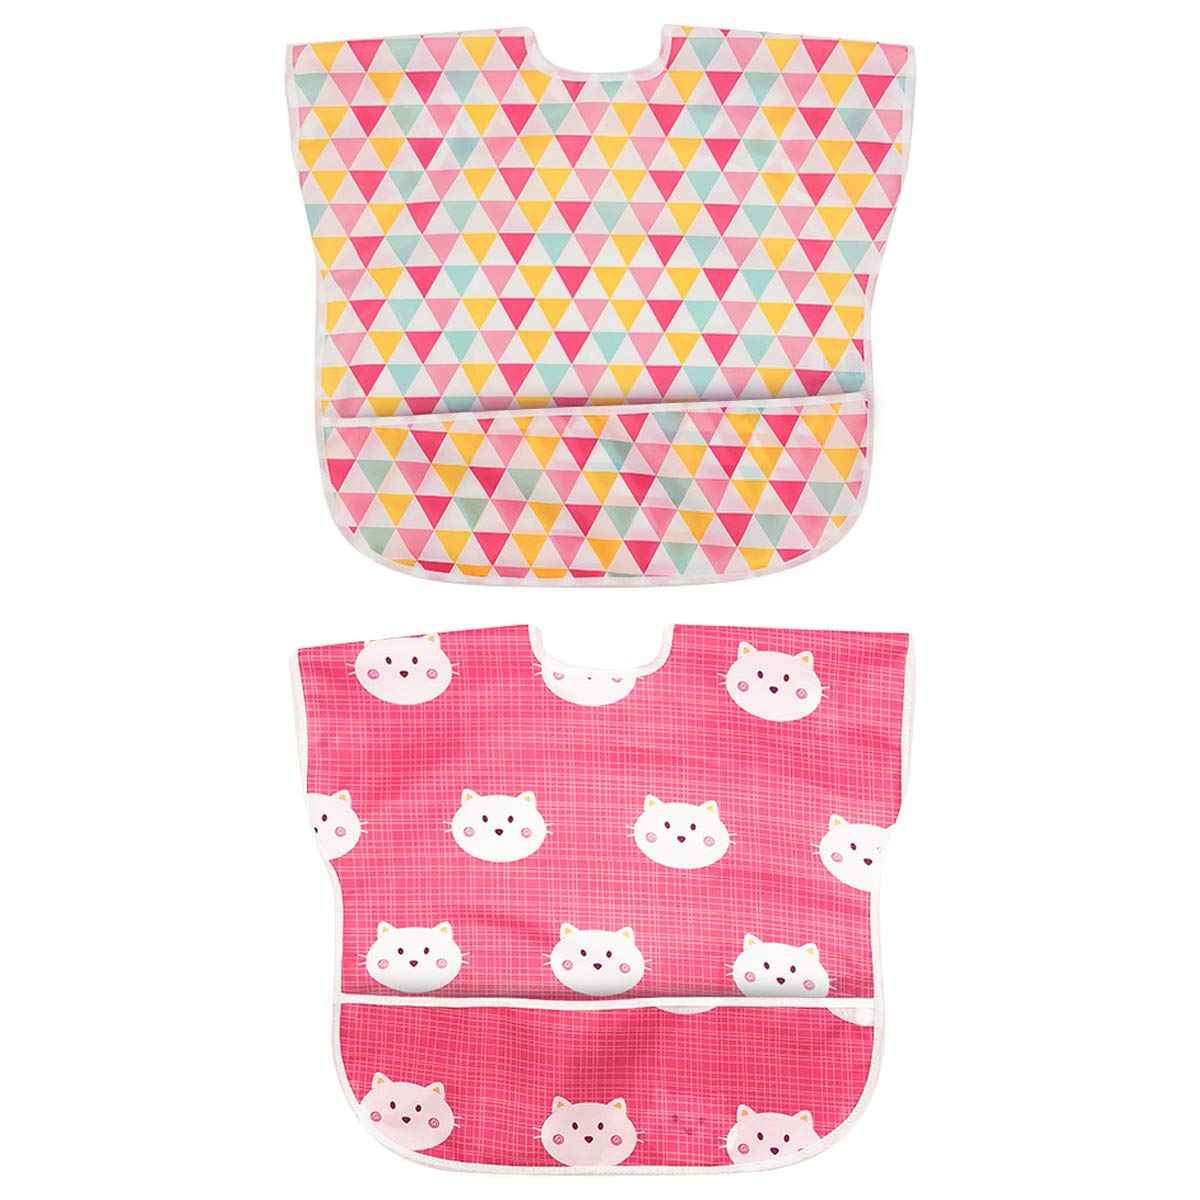 6-24 Months Long Sleeved Bib Waterproof Bibs for Babies and Toddlers with Pocket Pack of 2 by Little Dimsum